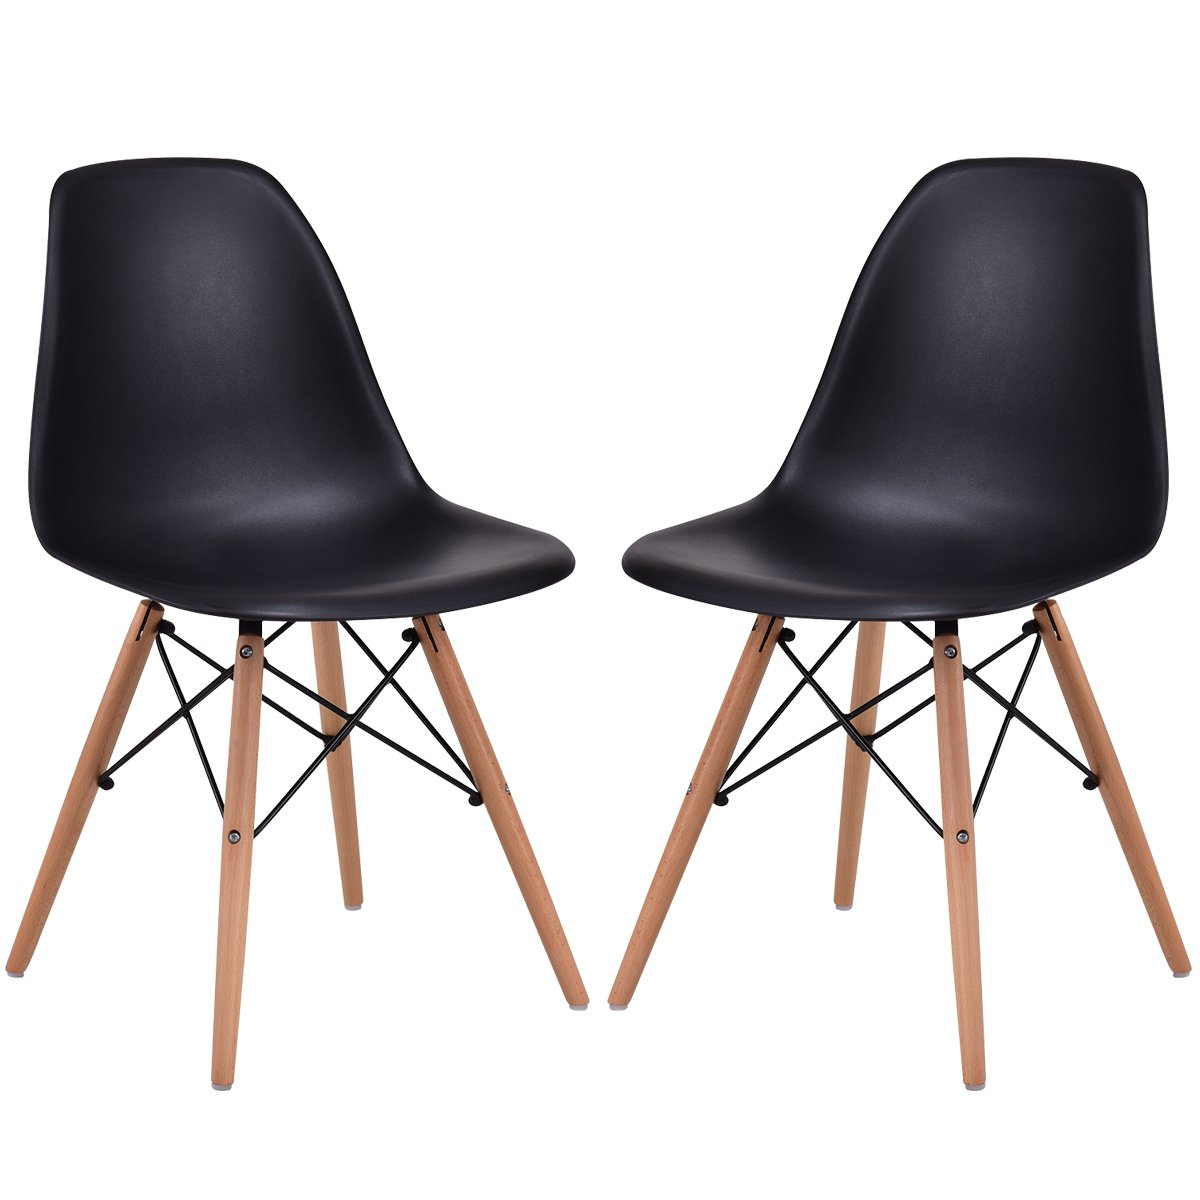 Giantex Set of 2 Dining Chair Armless Mid Century Modern Style Plastic Seat Wood Dowel Legs for Bedroom Accent Living Room DSW Chair (Black)